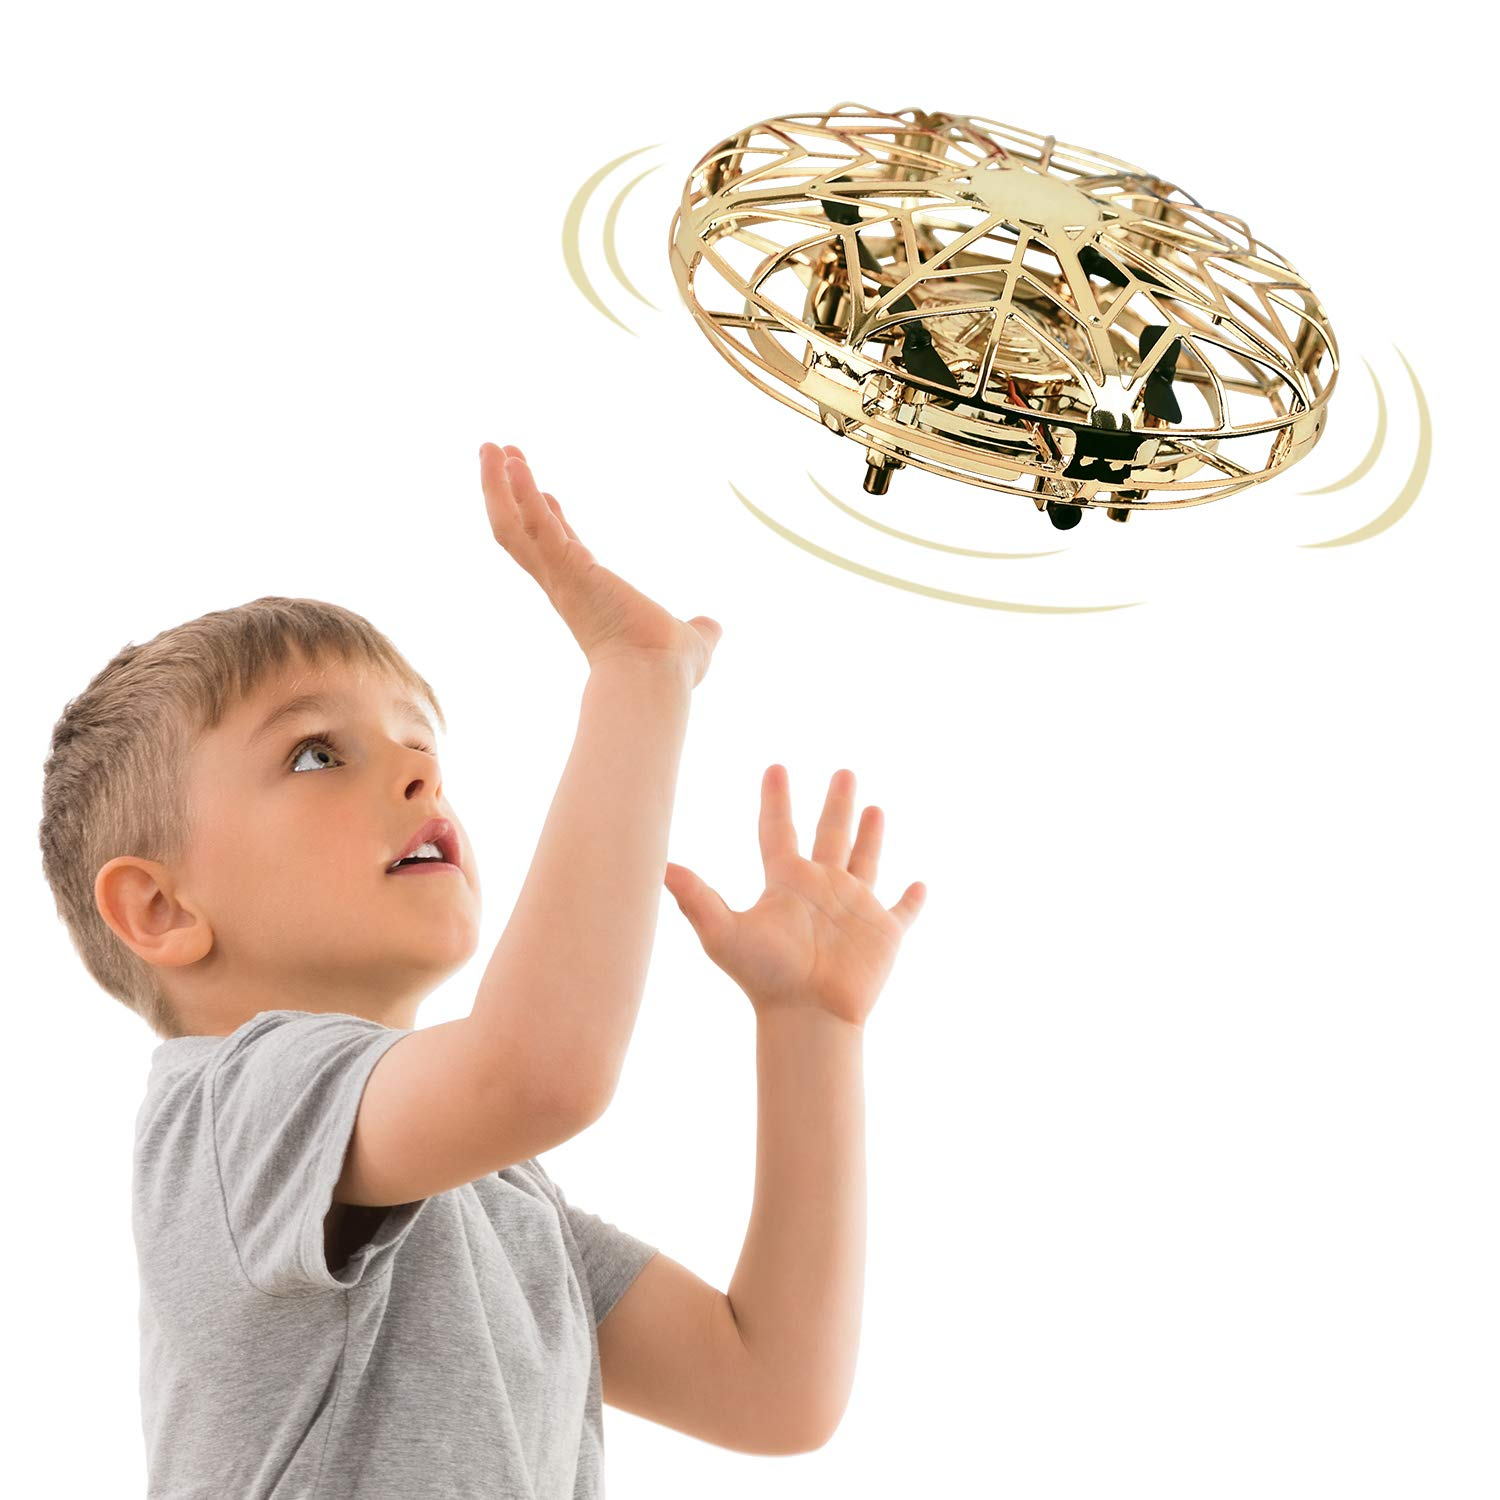 Tesoky New Toys for 3-12 Year Old Boys, Hand Operated Drone for Kids Cool Toys for 3-12 Year Old Boys Girls Fun Toys for Kids 3-12 for Teen Boys Girls Gifts for 3-13 Year Old Girls FT03 by Tesoky